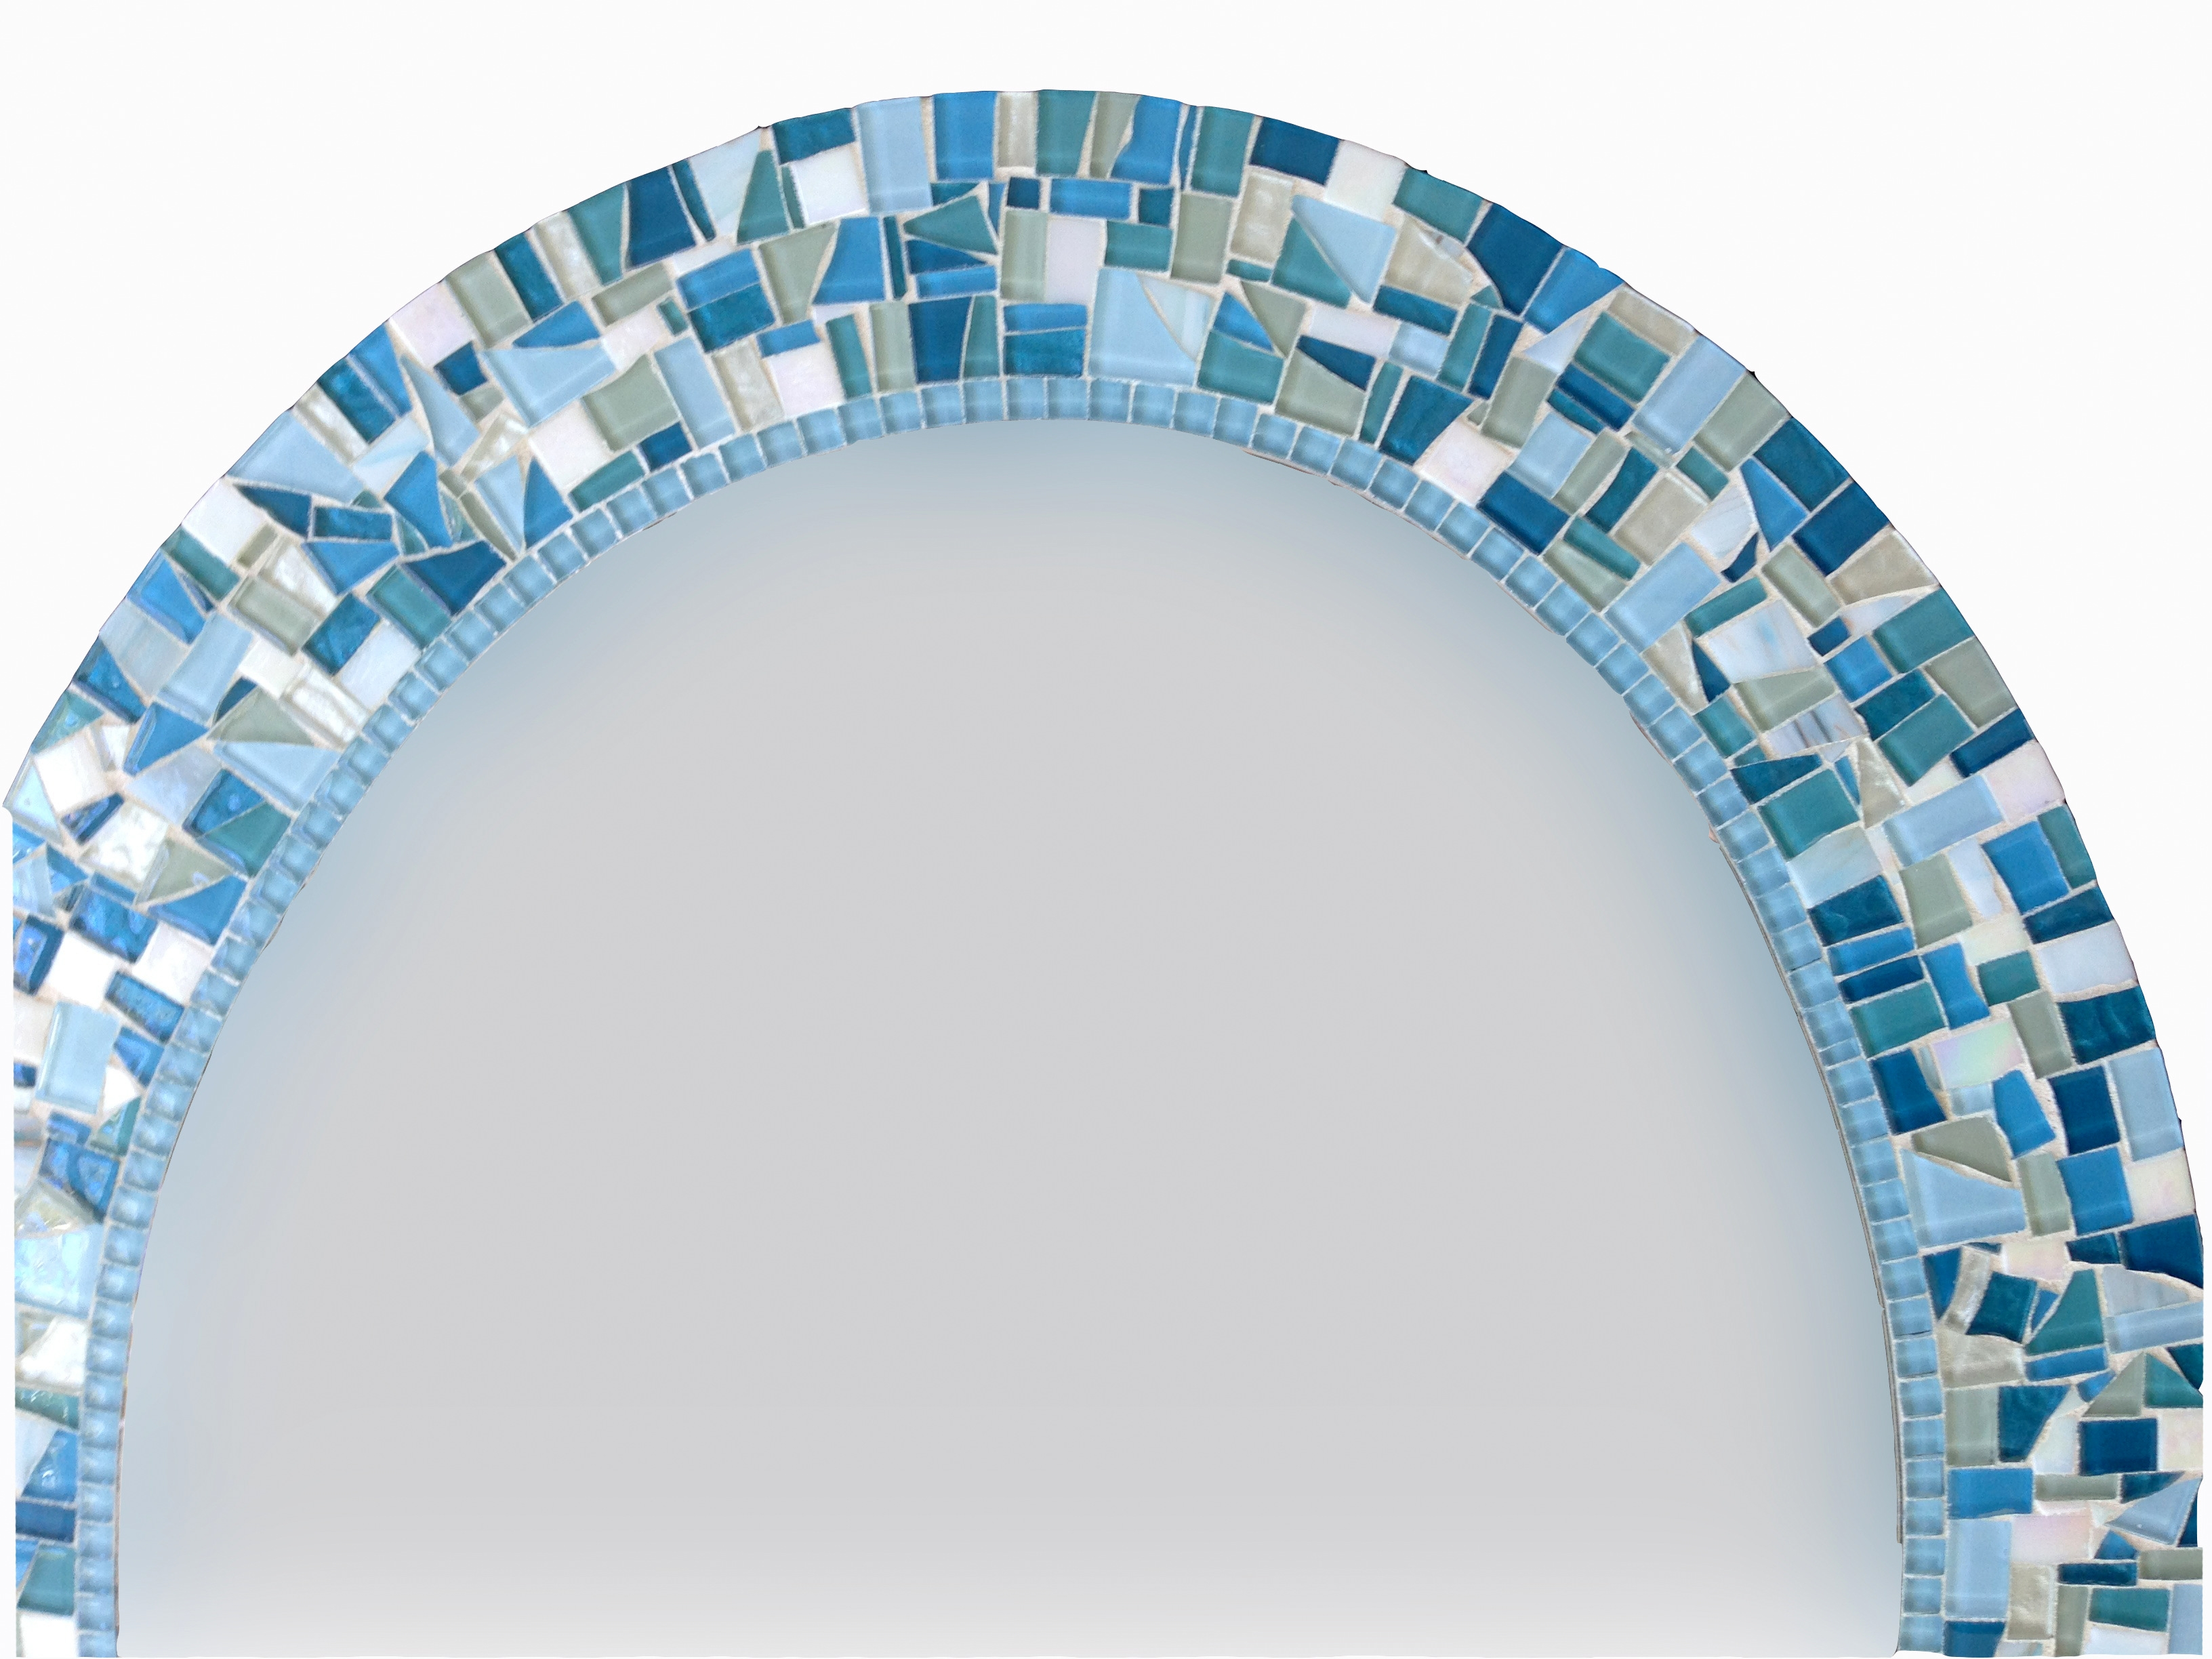 Oval Mosaic Wall Mirror Throughout Mosaic Wall Mirrors (Image 13 of 15)